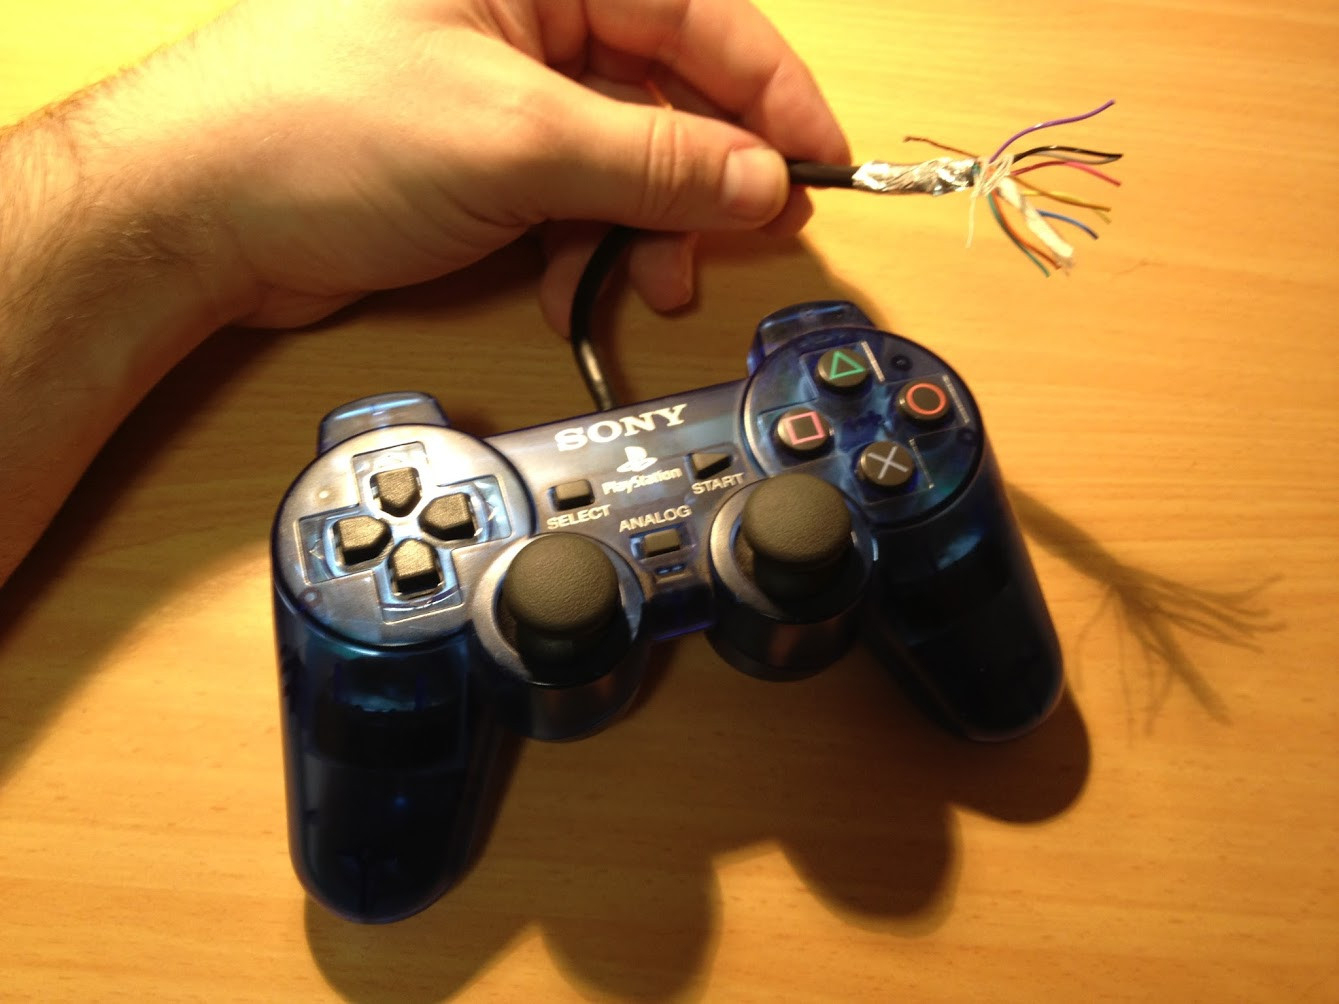 Wiring Diagram Usb Ps2 | Wiring Library - Ps2 Controller Wiring Diagram Usb